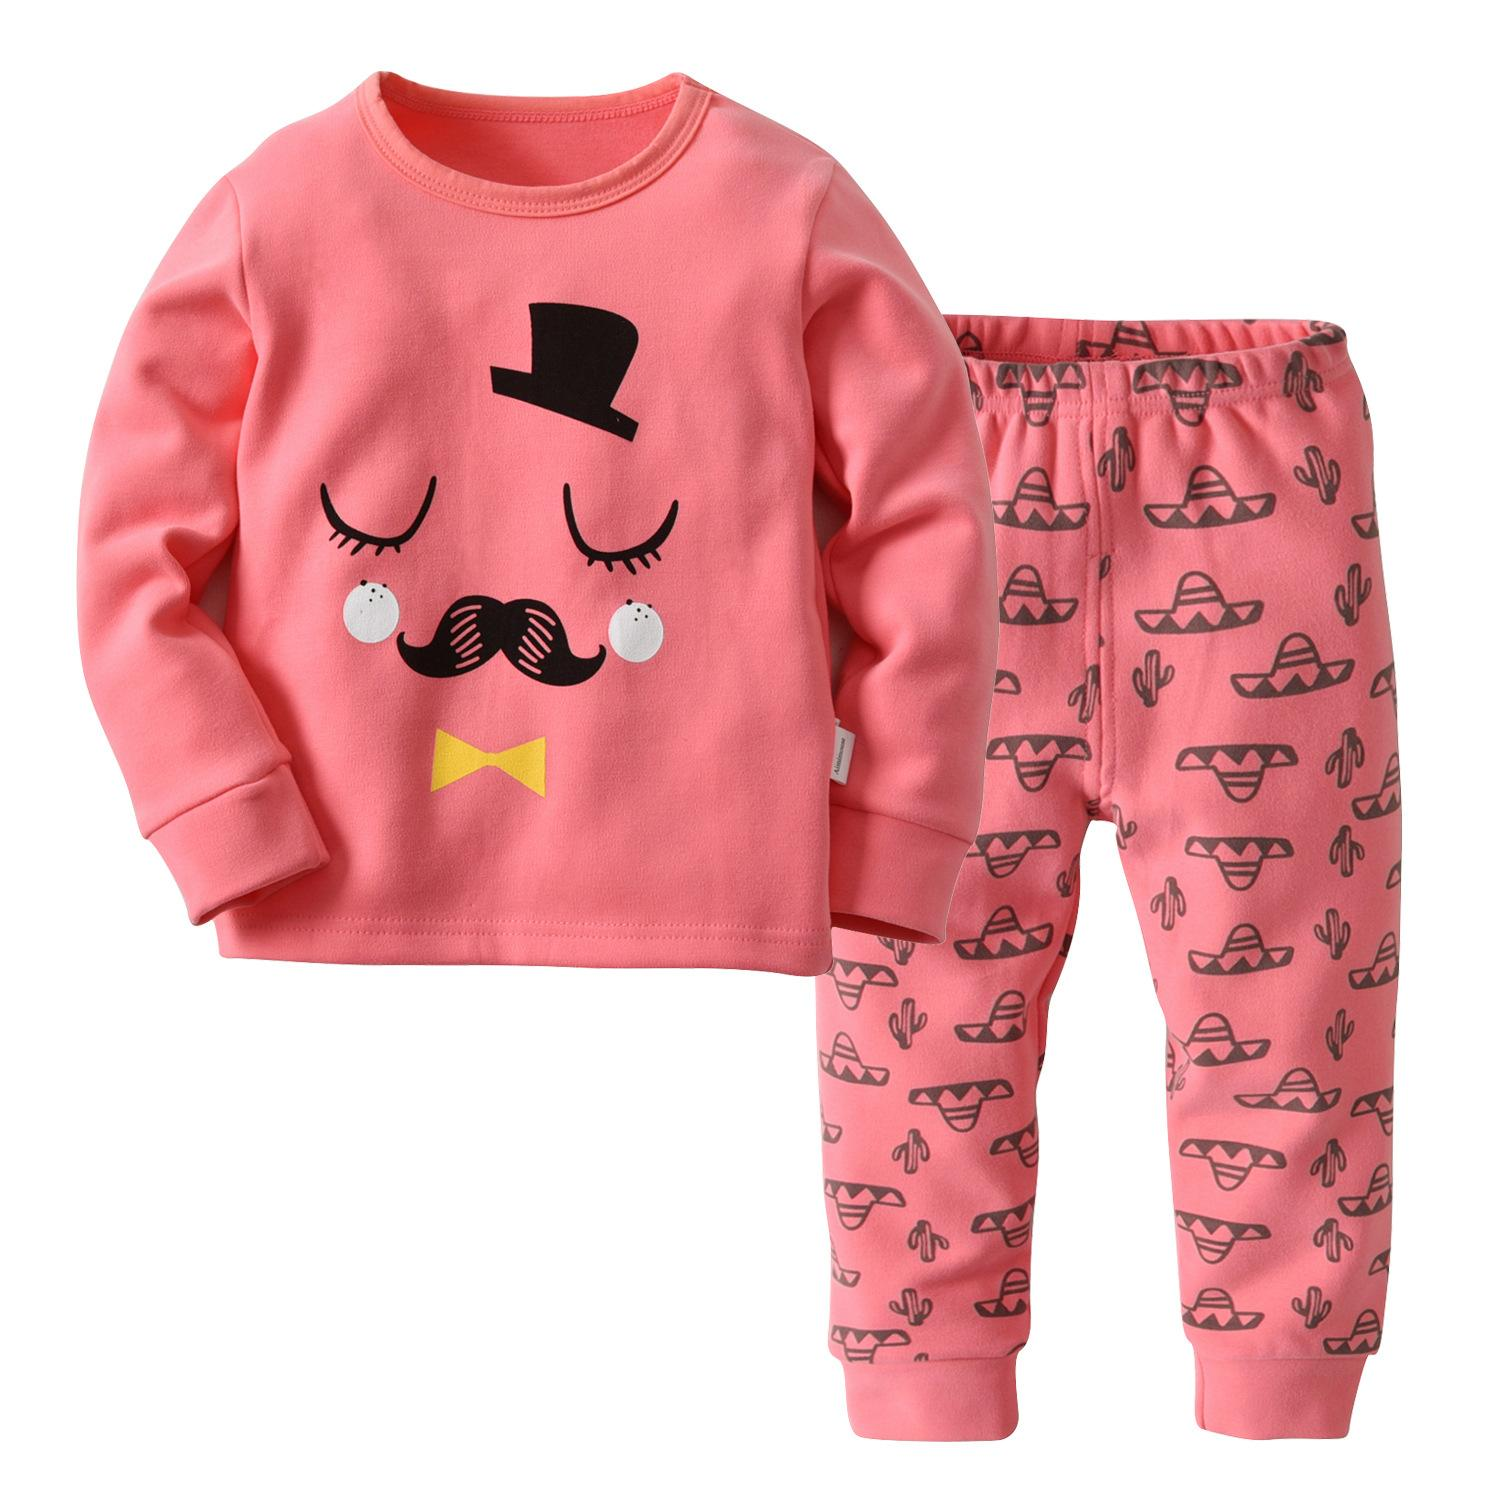 961f382b0e 2-7Y Kids Pink Pijamas Baby Girls Boys Christmas Children Pajamas ...